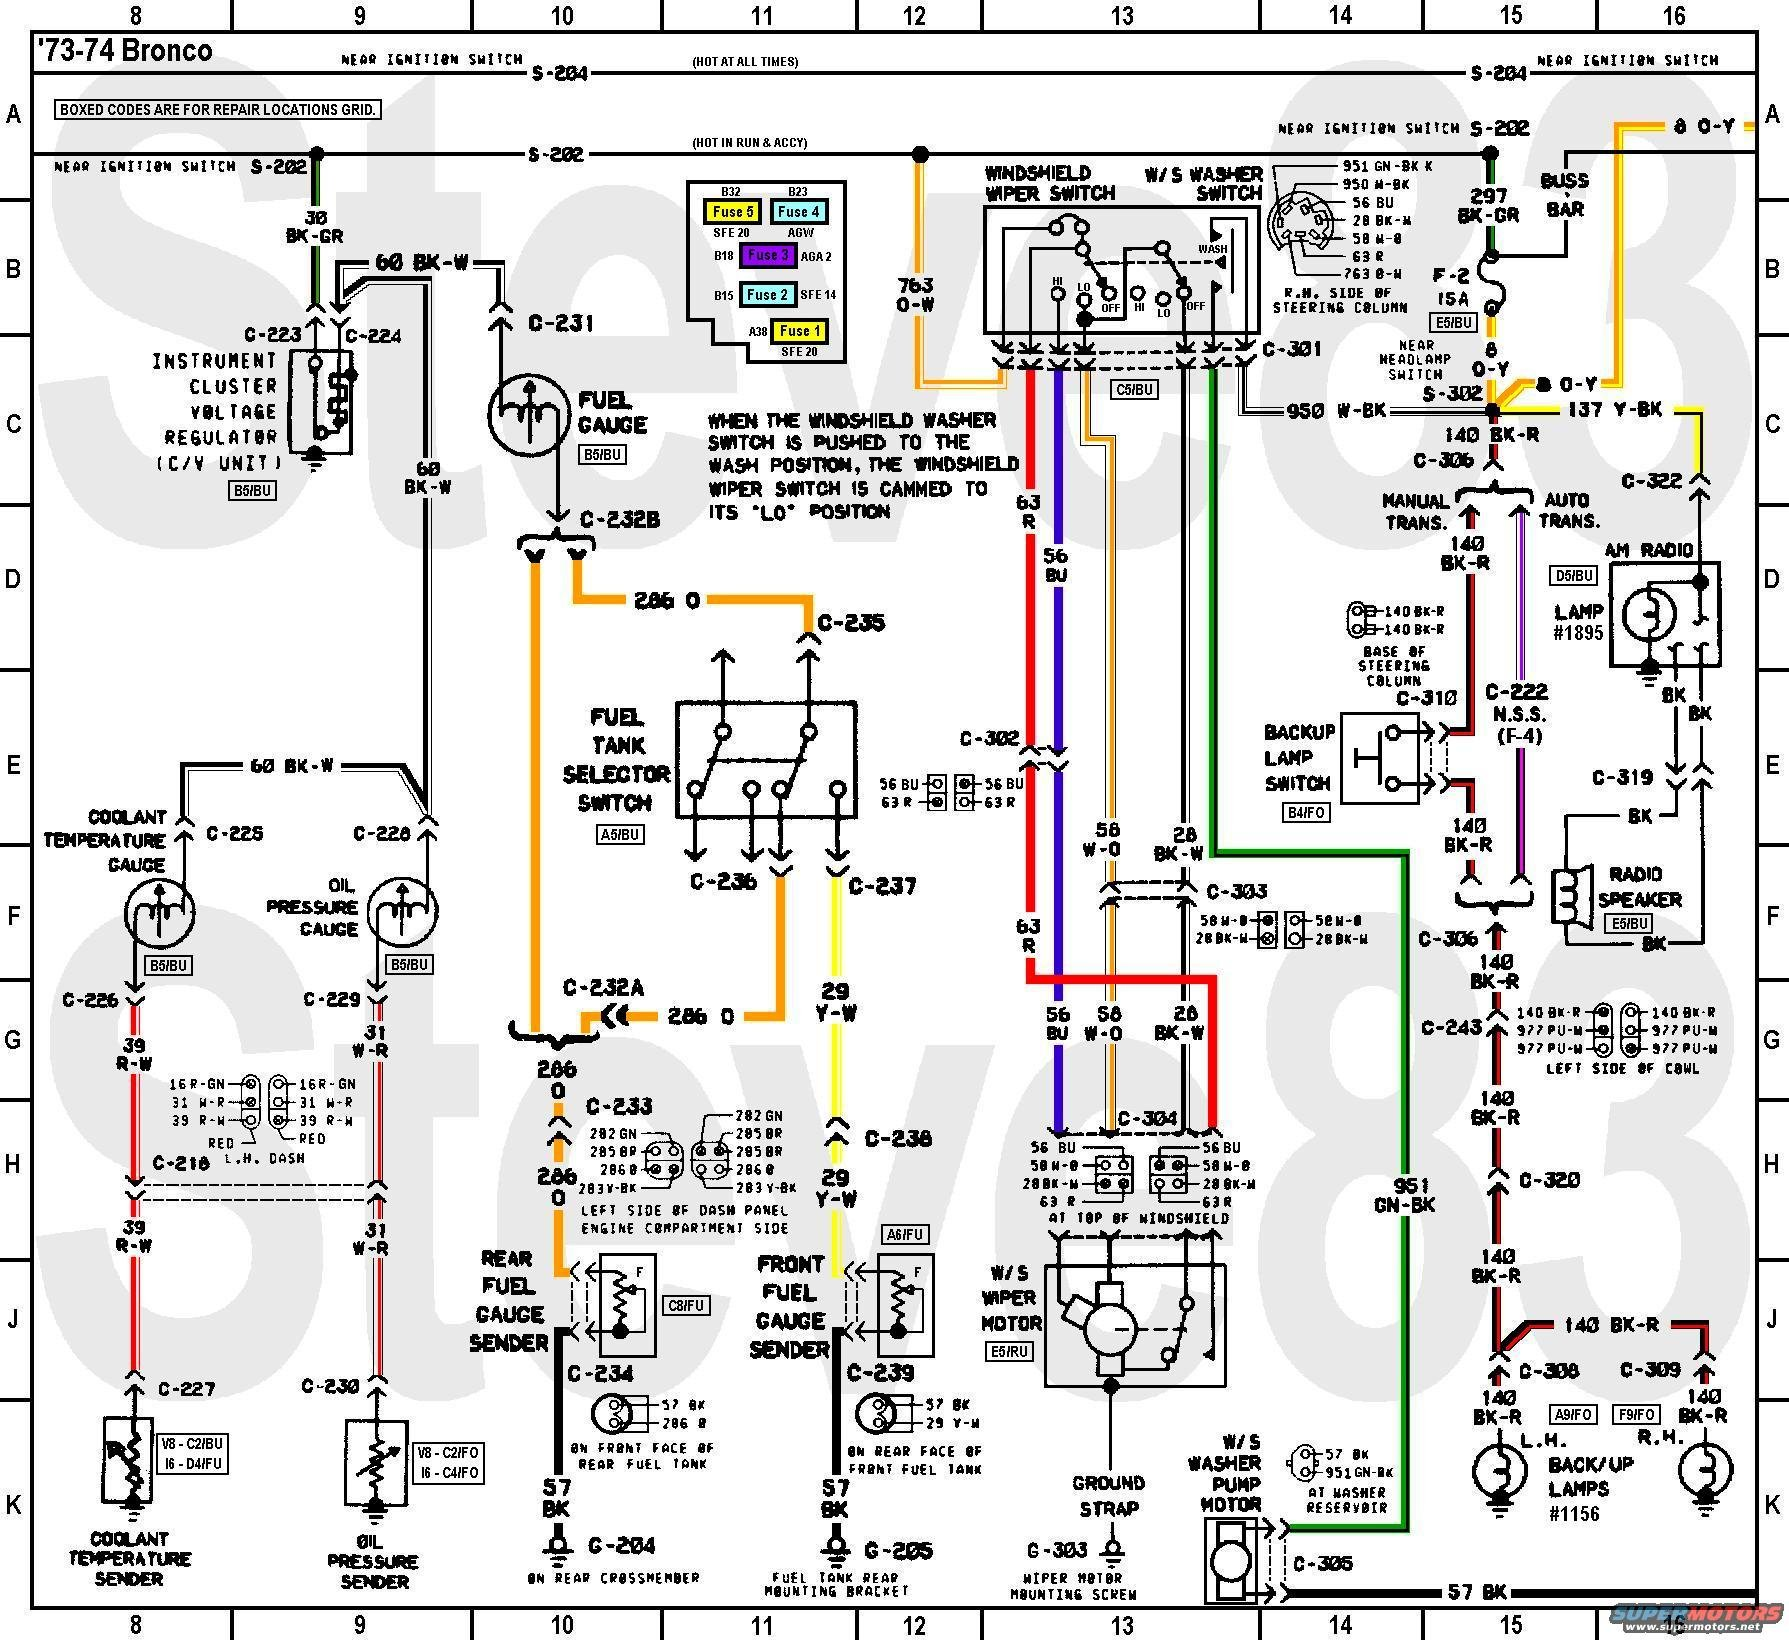 wiring7374bgawprrad 1976 ford bronco tech diagrams picture supermotors net 1979 bronco fuse box diagram at sewacar.co